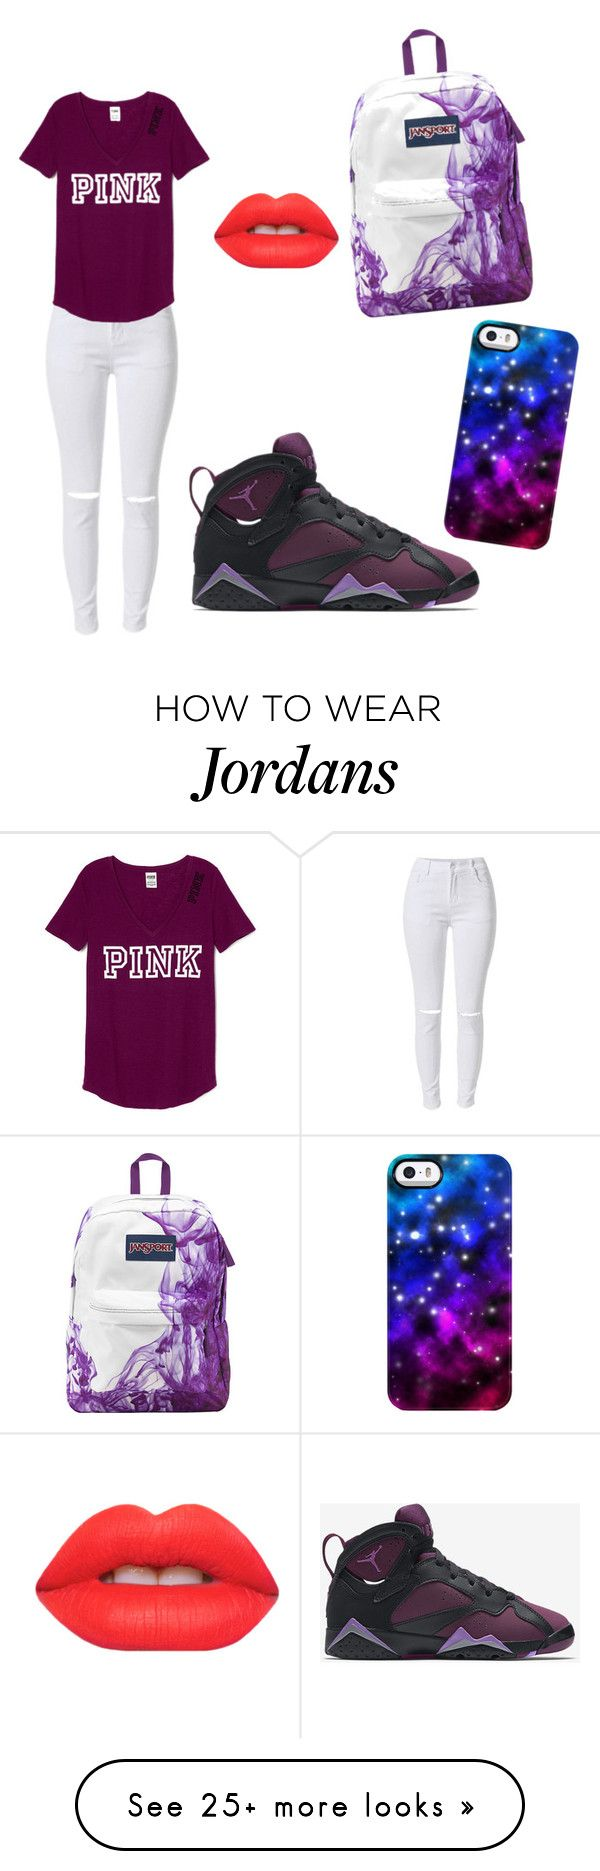 """Untitled #1"" by uniqueboom on Polyvore featuring NIKE, Lime Crime, JanSport, Uncommon, women's clothing, women's fashion, women, female, woman and misses"